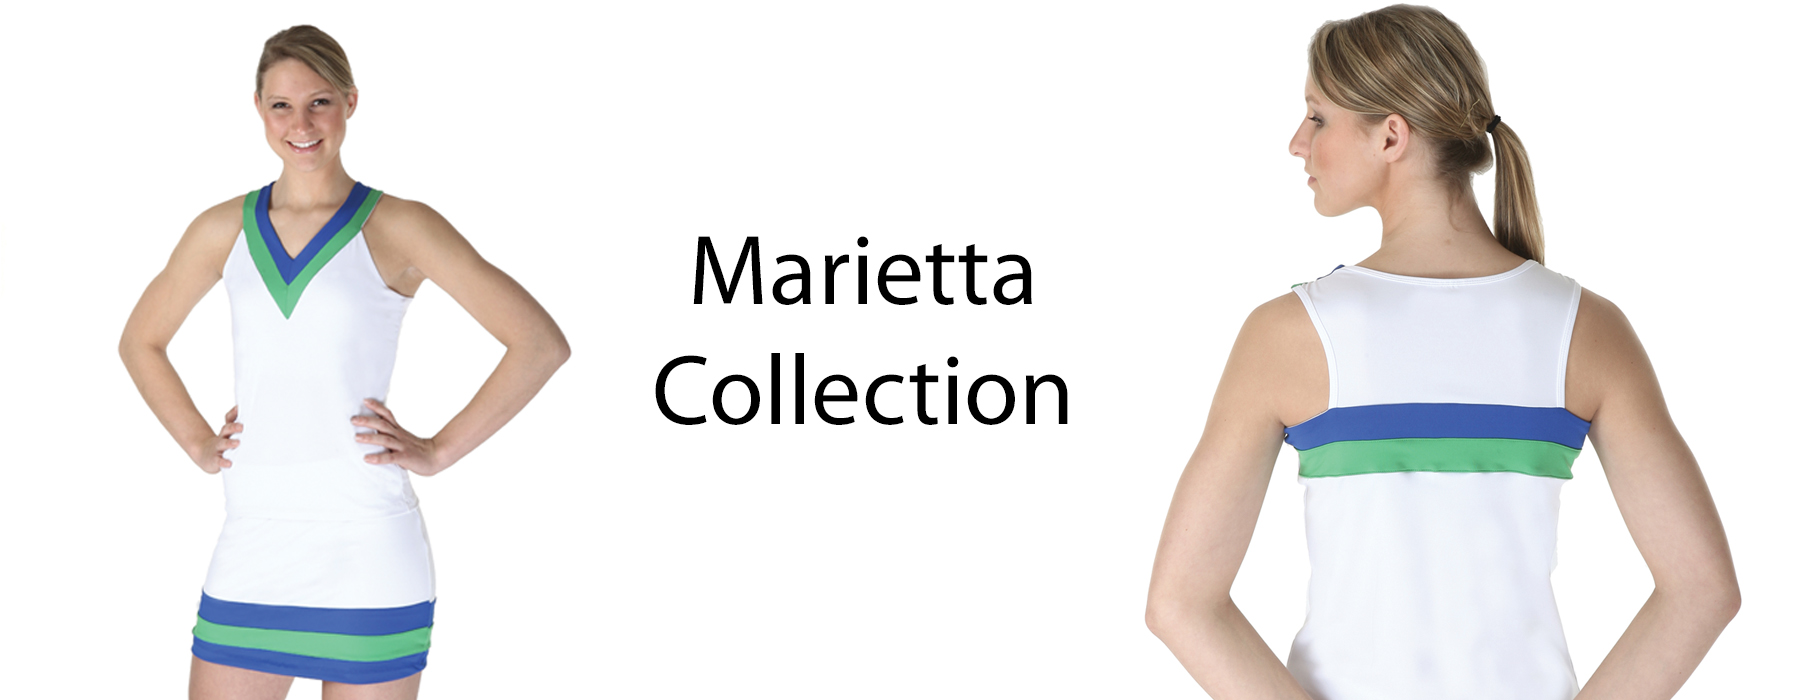 photo-gallery-peachy-tan-2015-marietta-collection.jpg